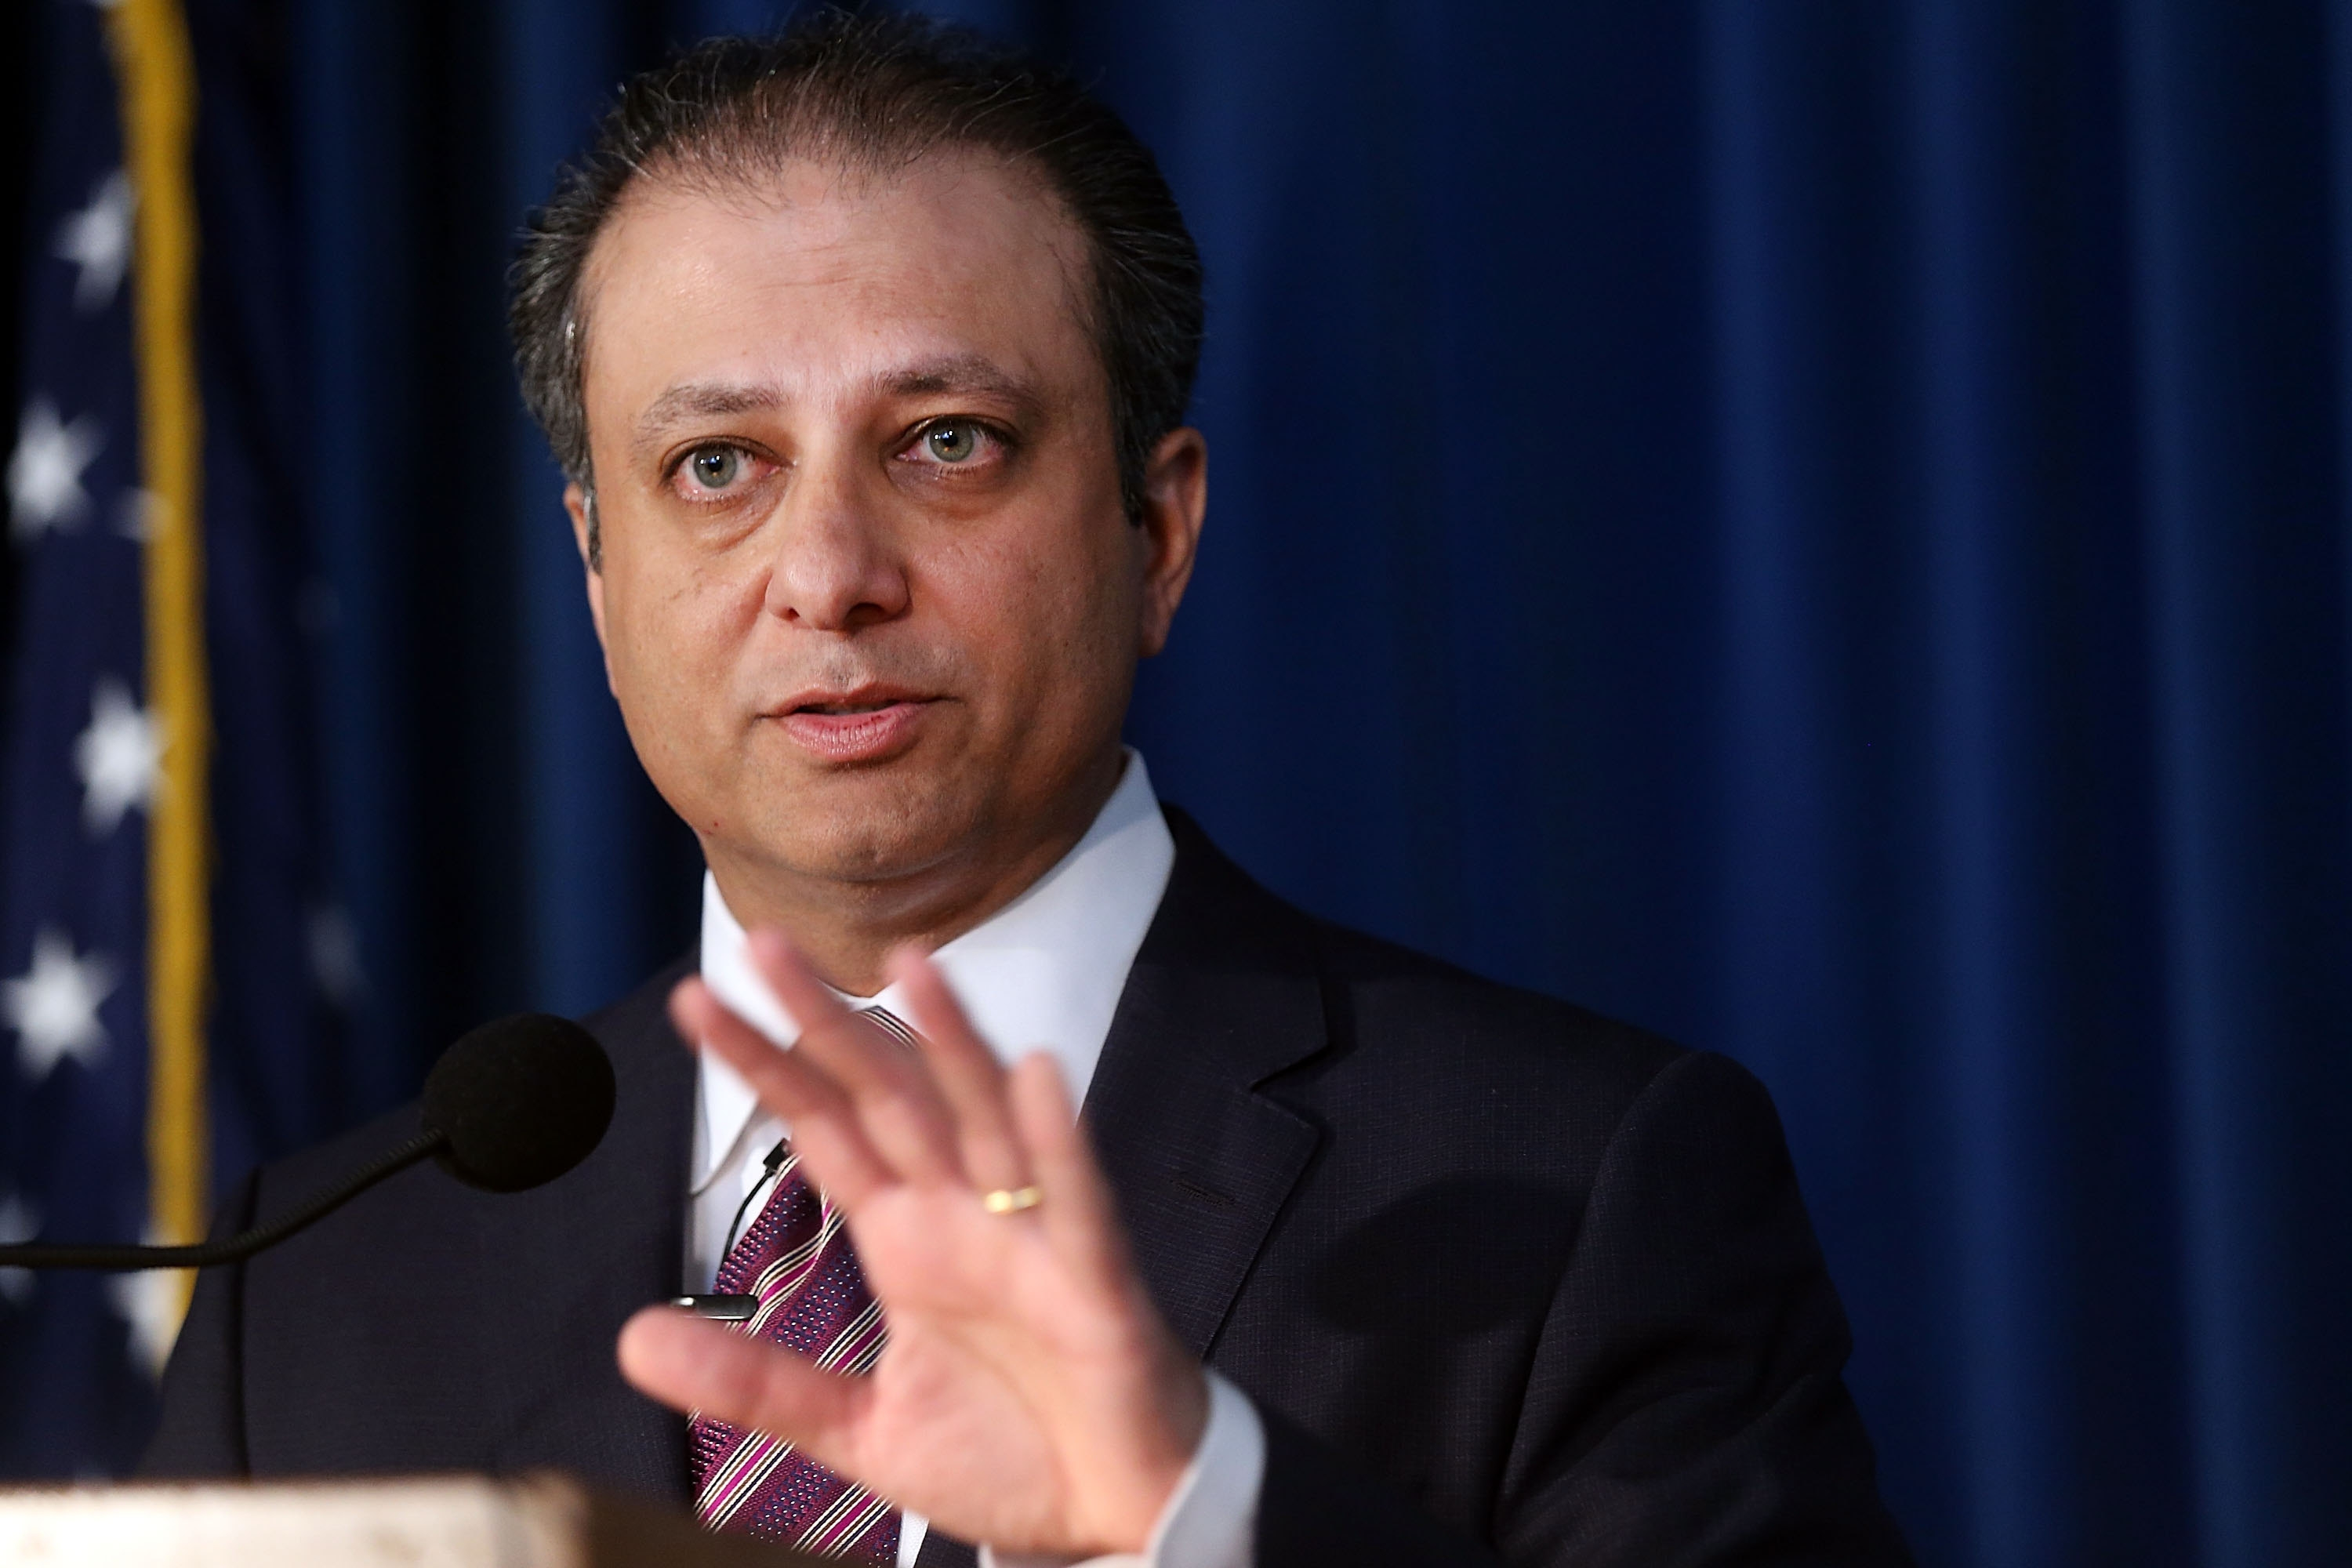 U.S. Attorney Preet Bharara found no illegality in the shutdown of the Moreland Commission investigating corruption in the state. (Getty Images file photo)